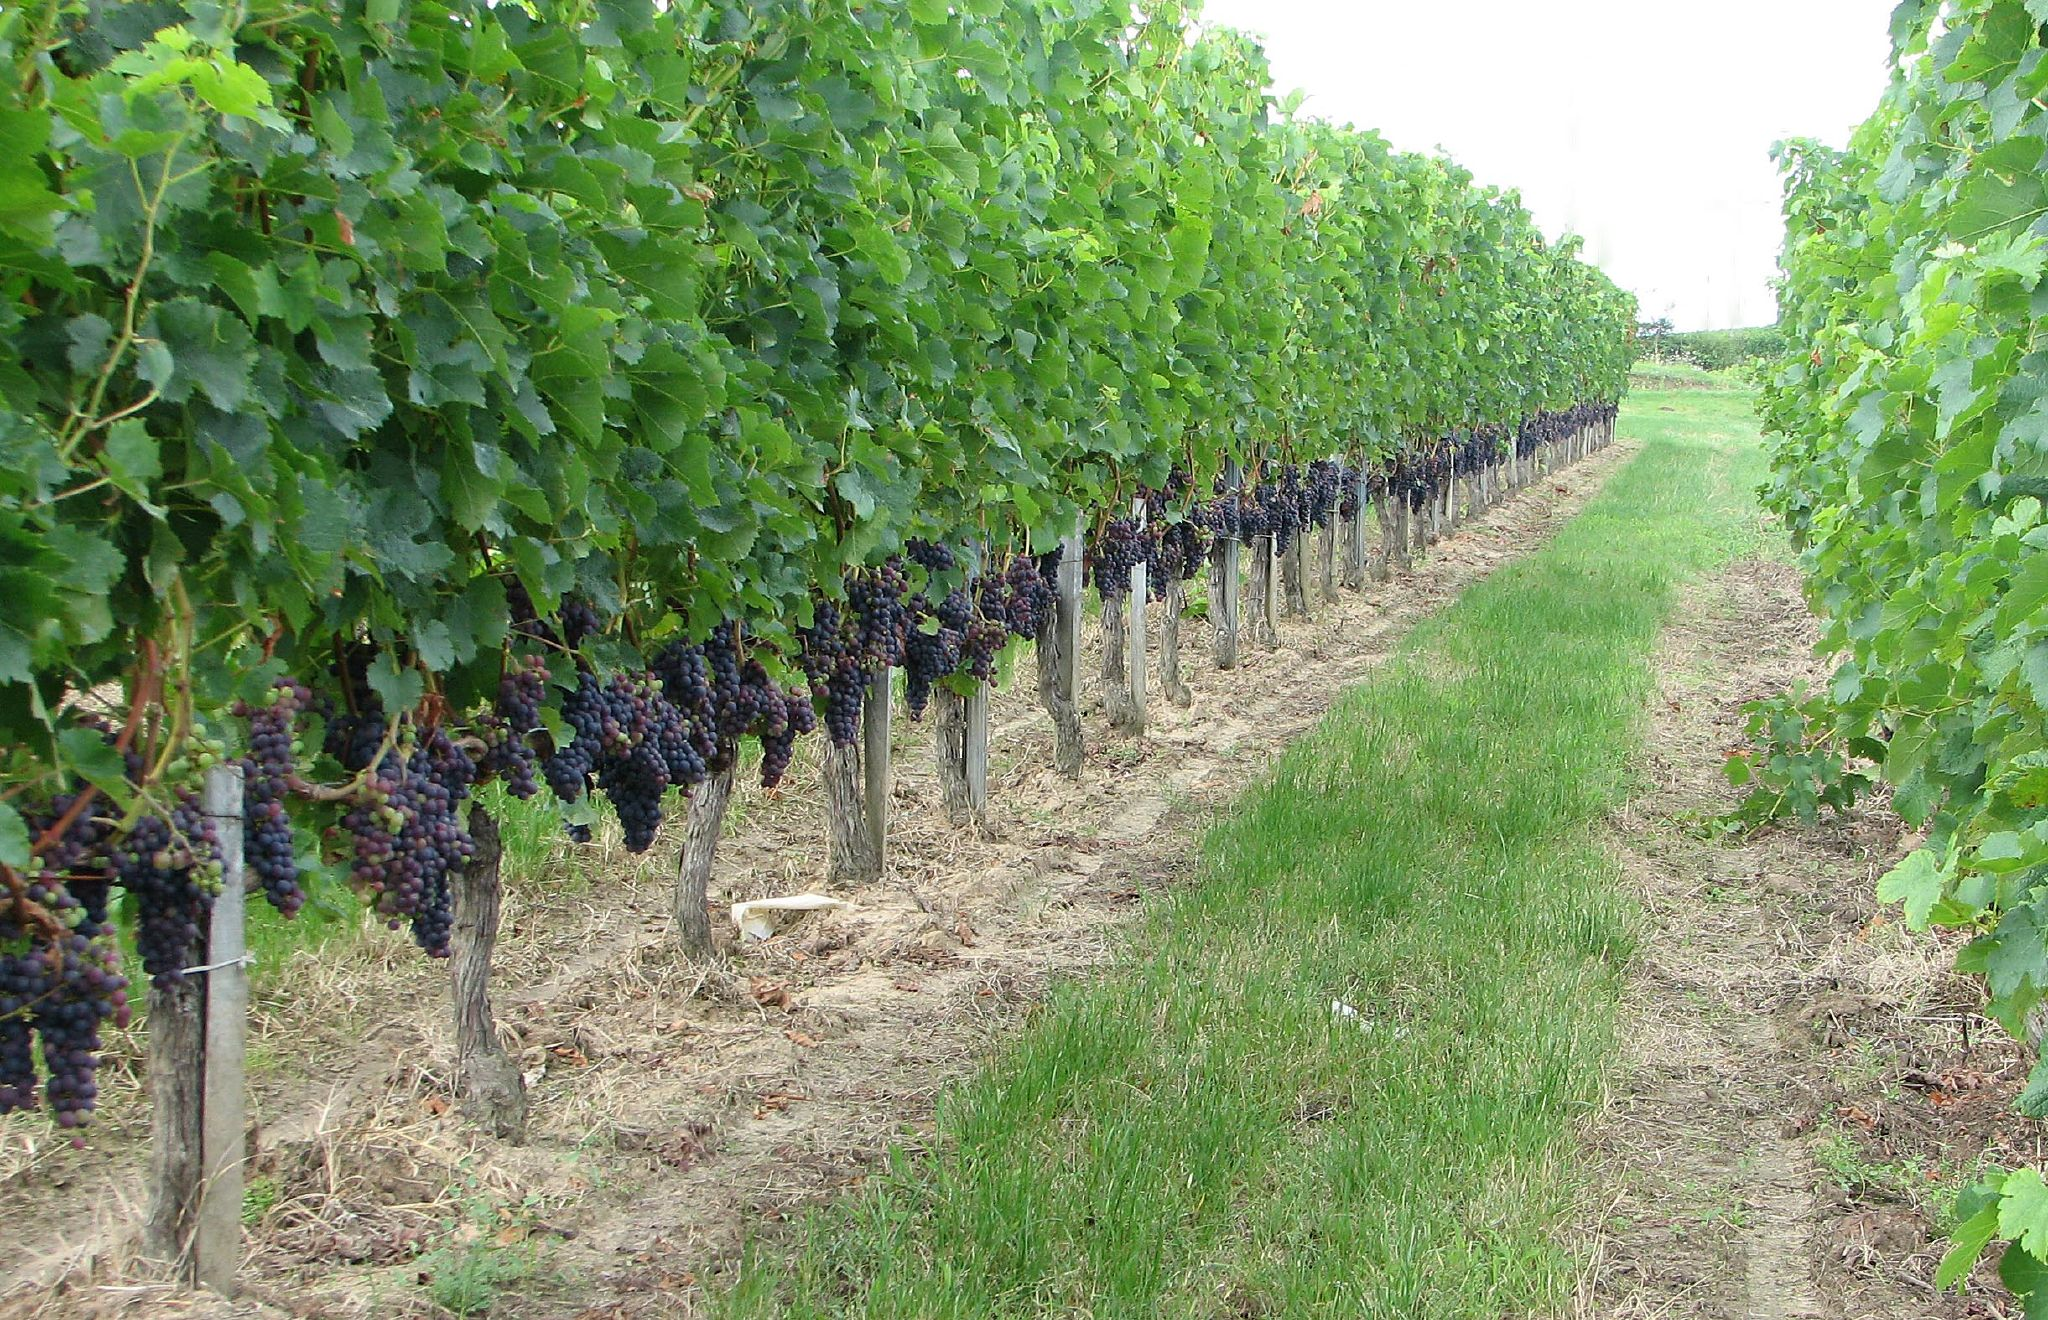 Vineyard - Wikipedia